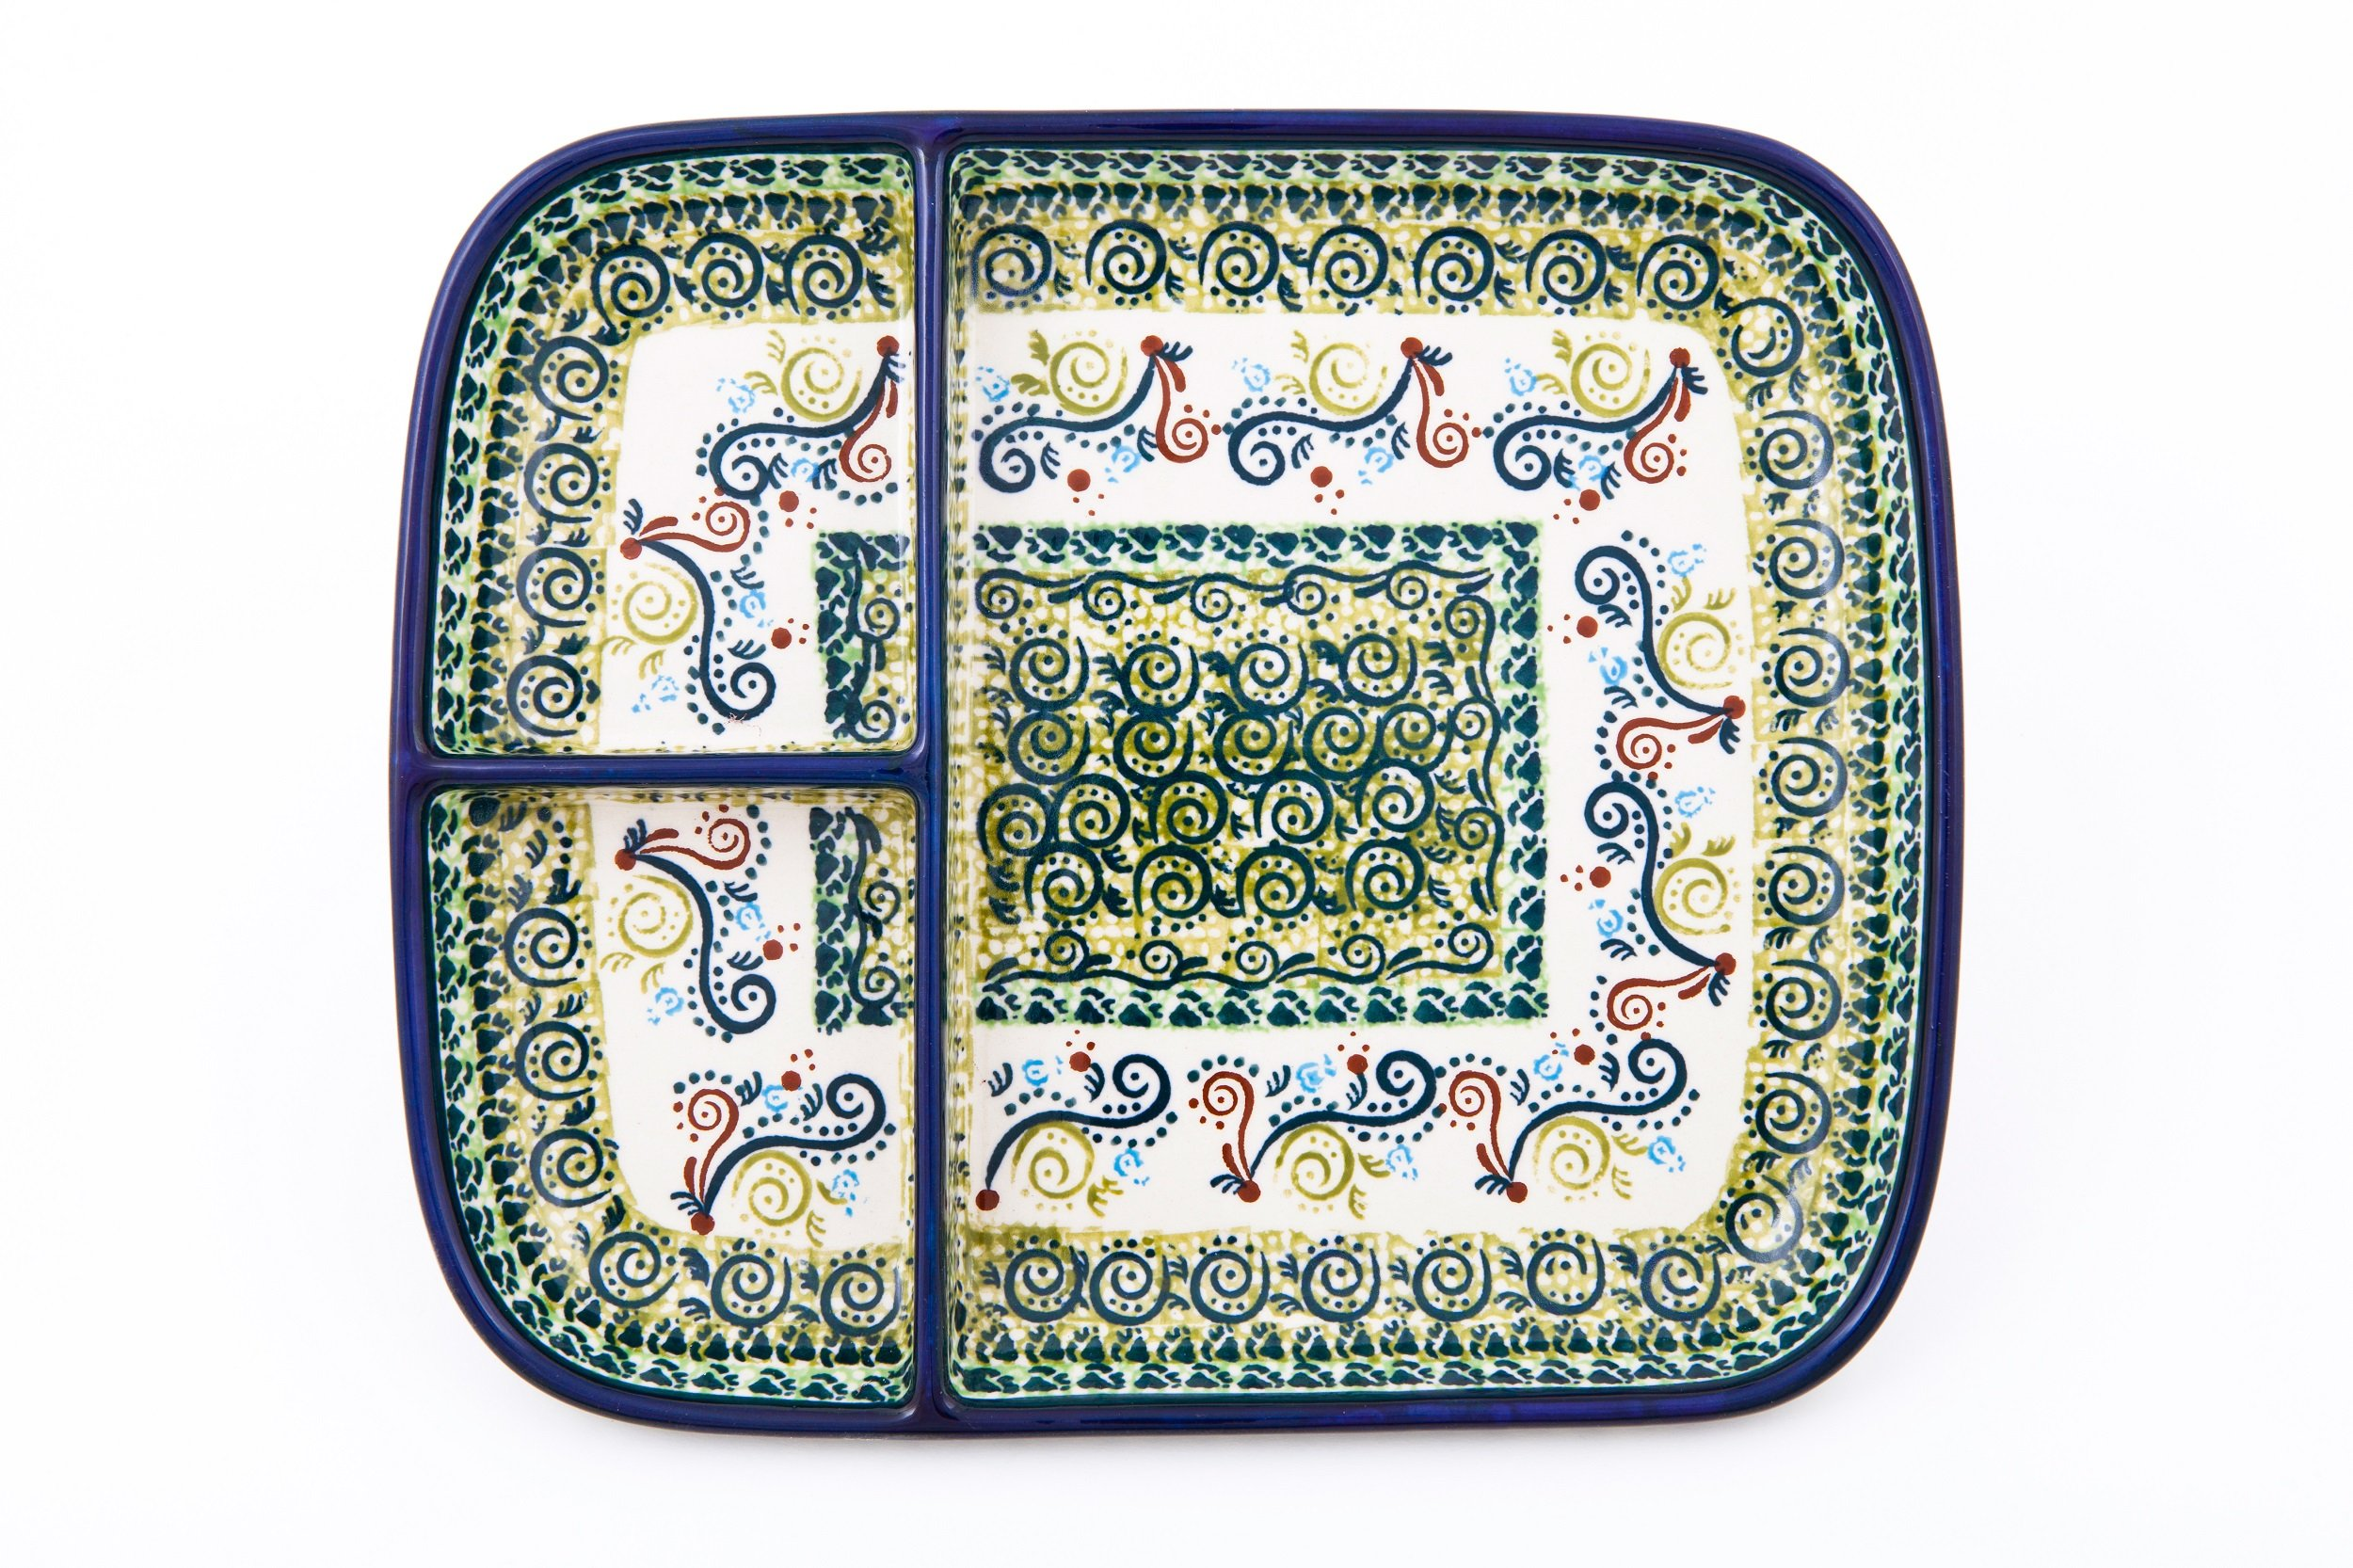 Hand-Decorated Polish Pottery Snack Plate with 3Compartments, 25.0×21.0cm Height 3cm, Dekor DU163